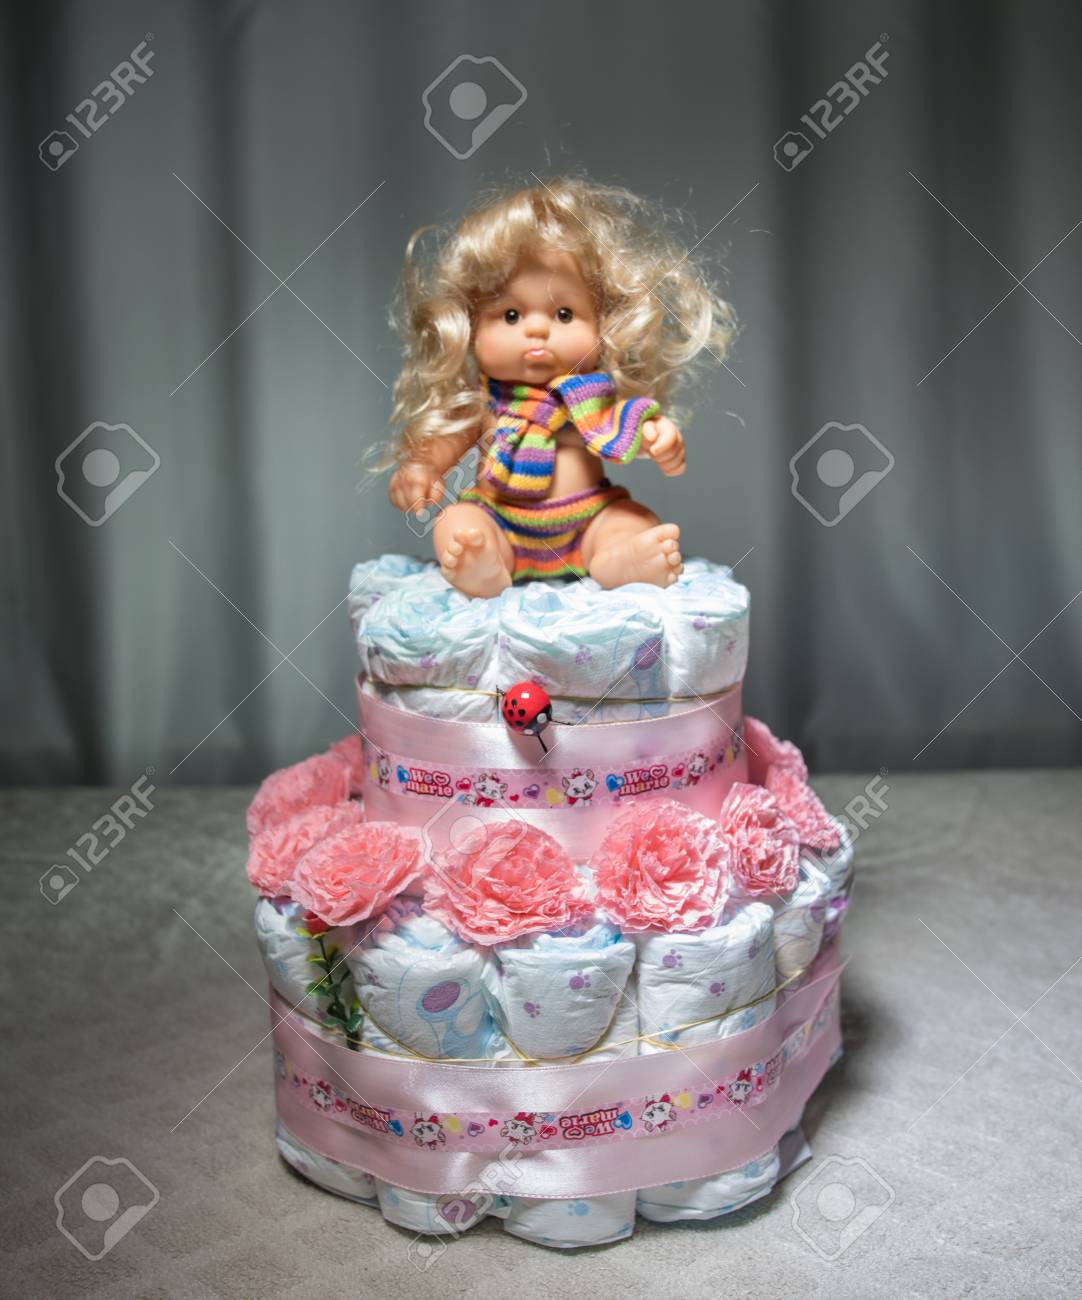 Cake Of Diapers Baby Shower Gift Diaper Wrapped Diapers A